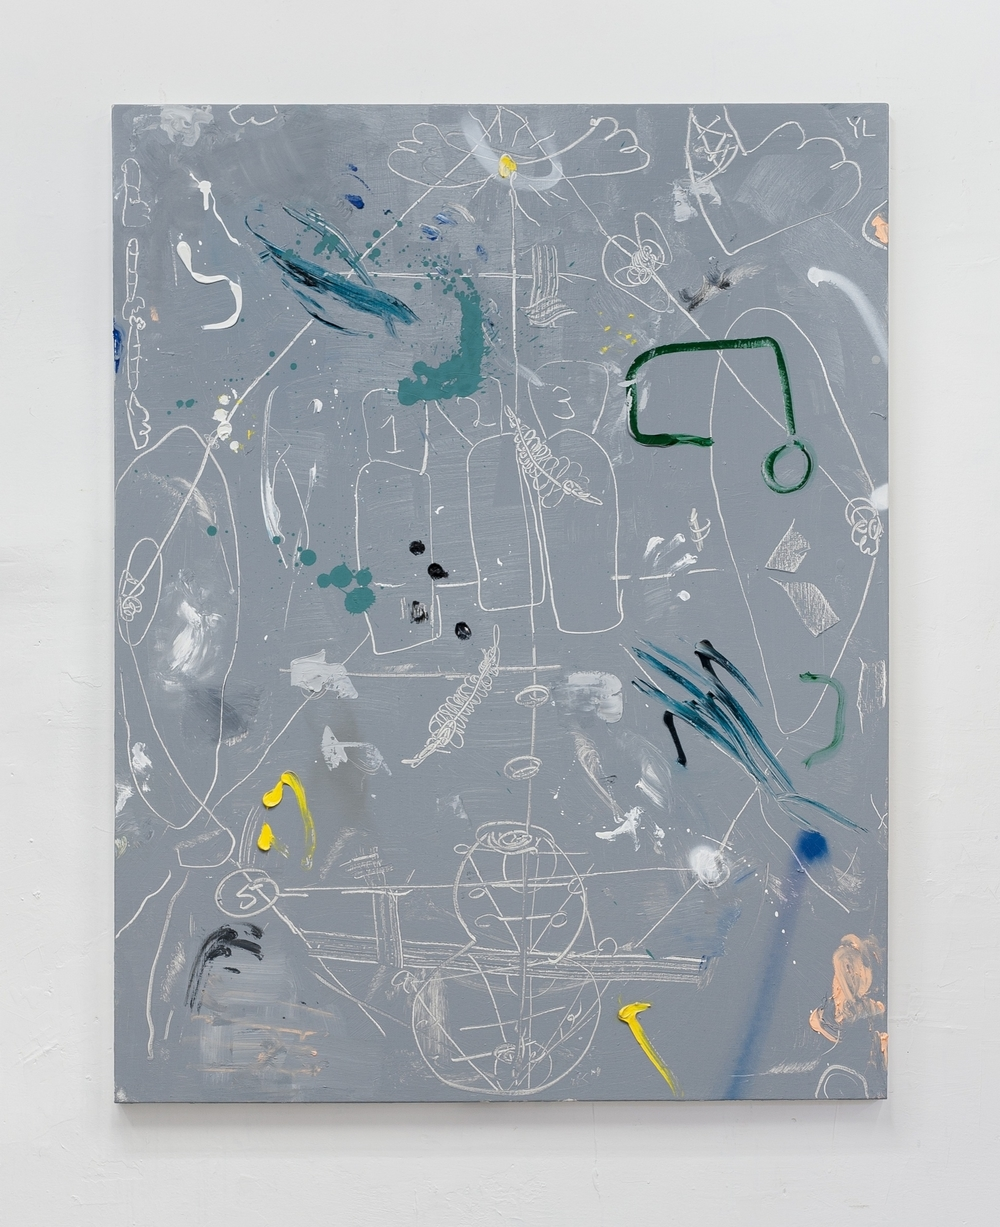 PINBALL, 2012   oil and  spray paint on canvas, 128x100cm